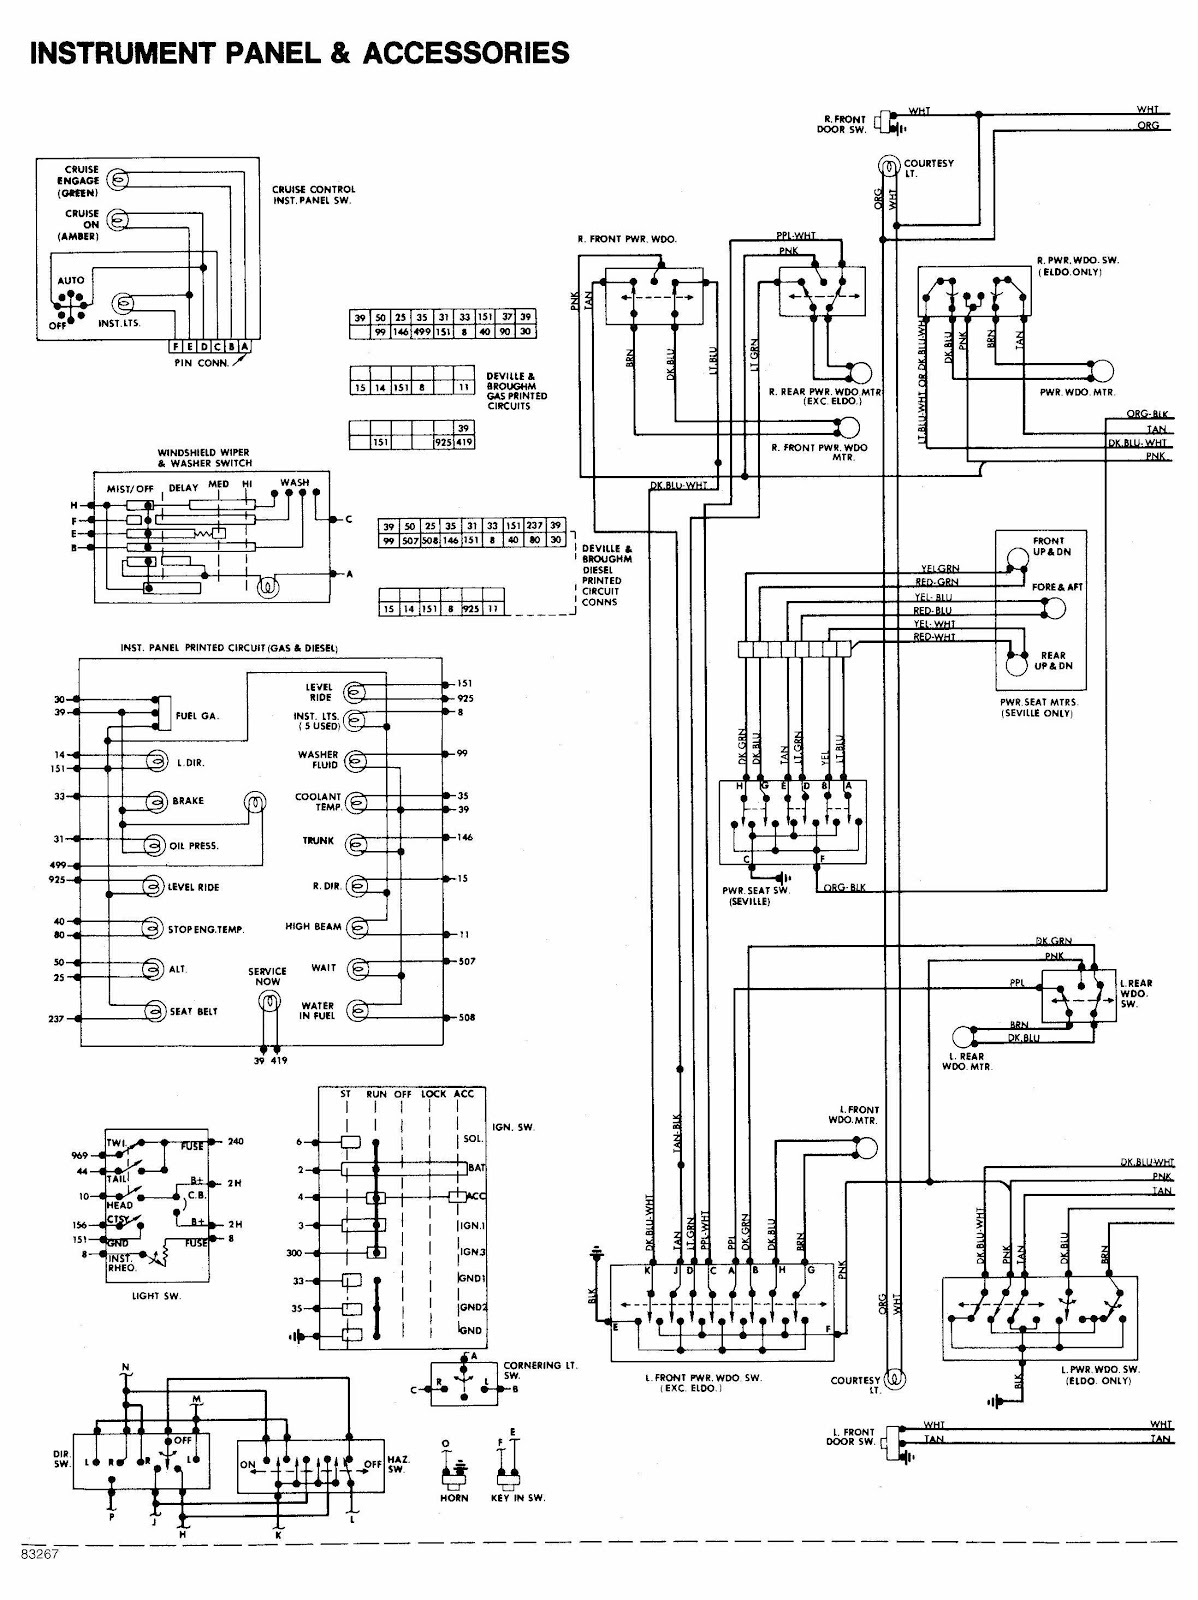 hight resolution of cadillac de ville 1984 instrument panel and accessories 1962 cadillac wiring 1962 cadillac wiring